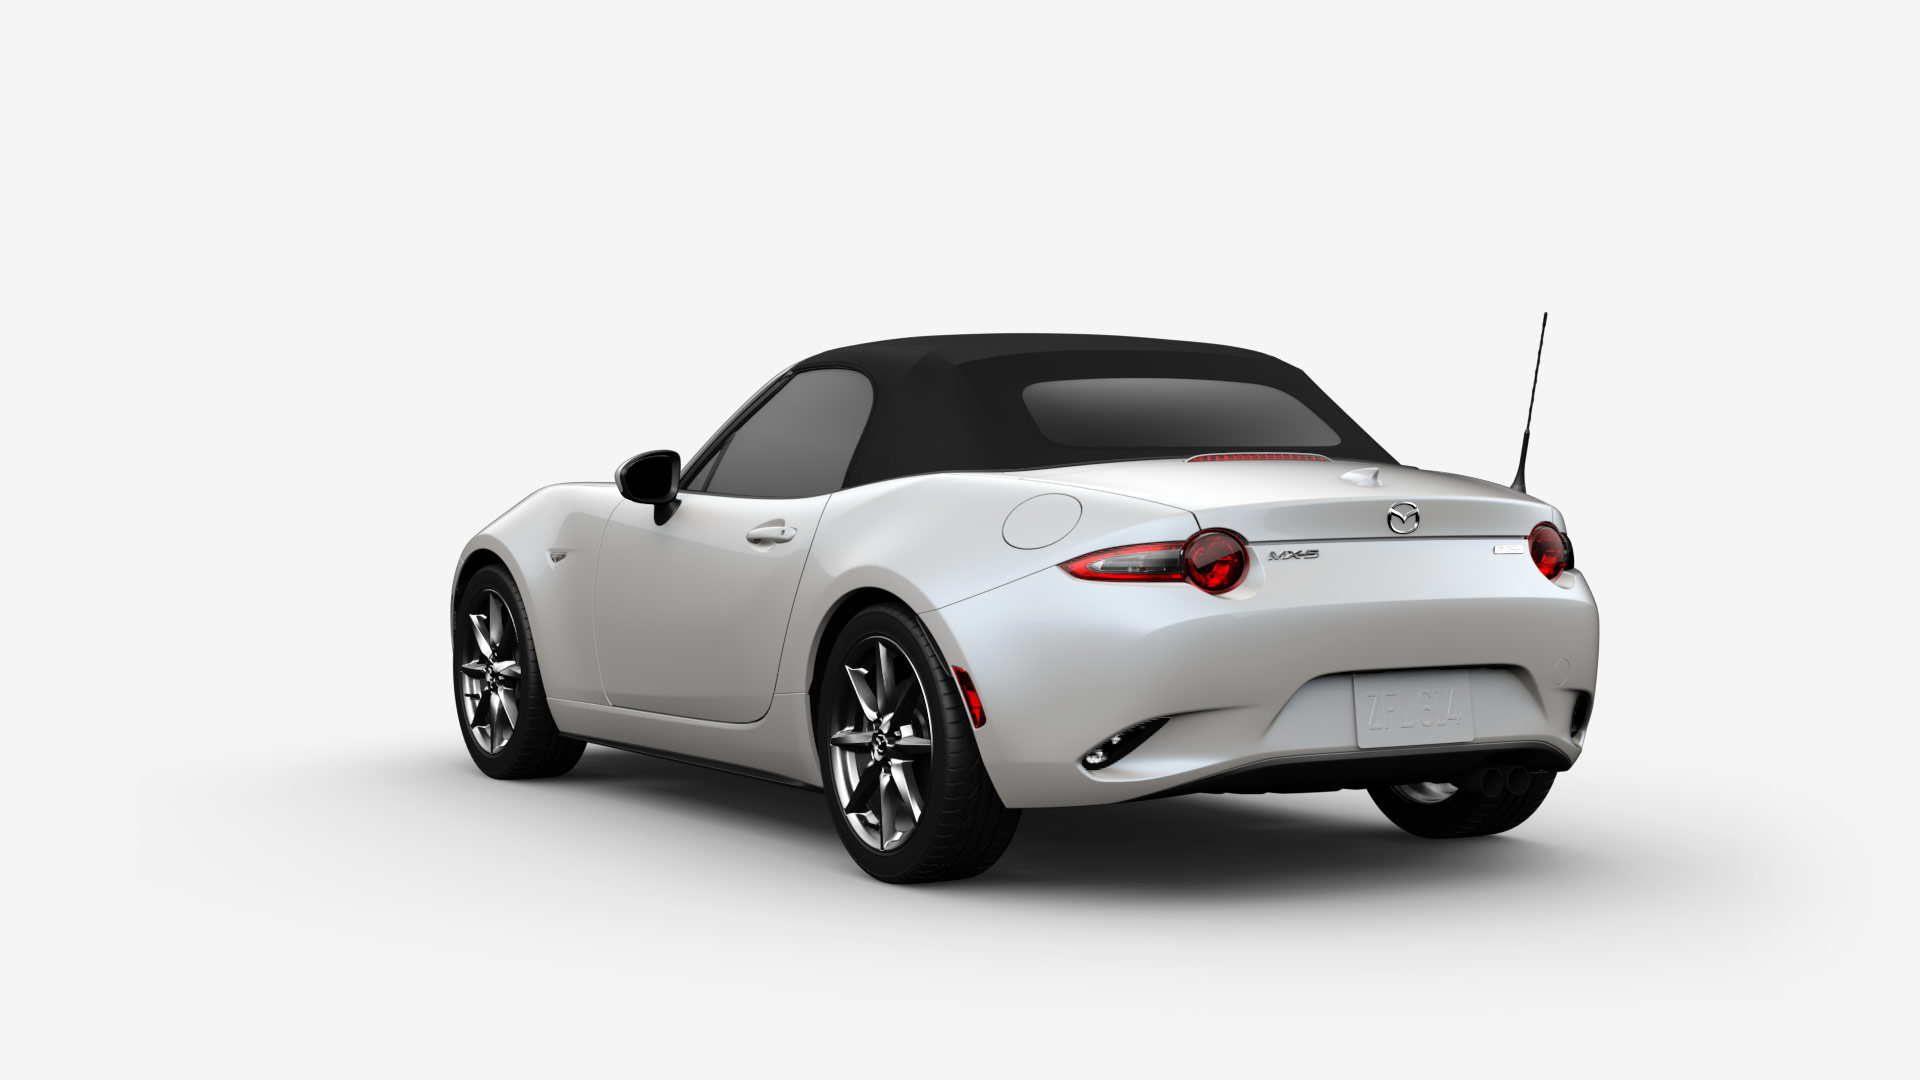 2017 mazda mx 5 rf review roadshow on check the science best car review. Black Bedroom Furniture Sets. Home Design Ideas